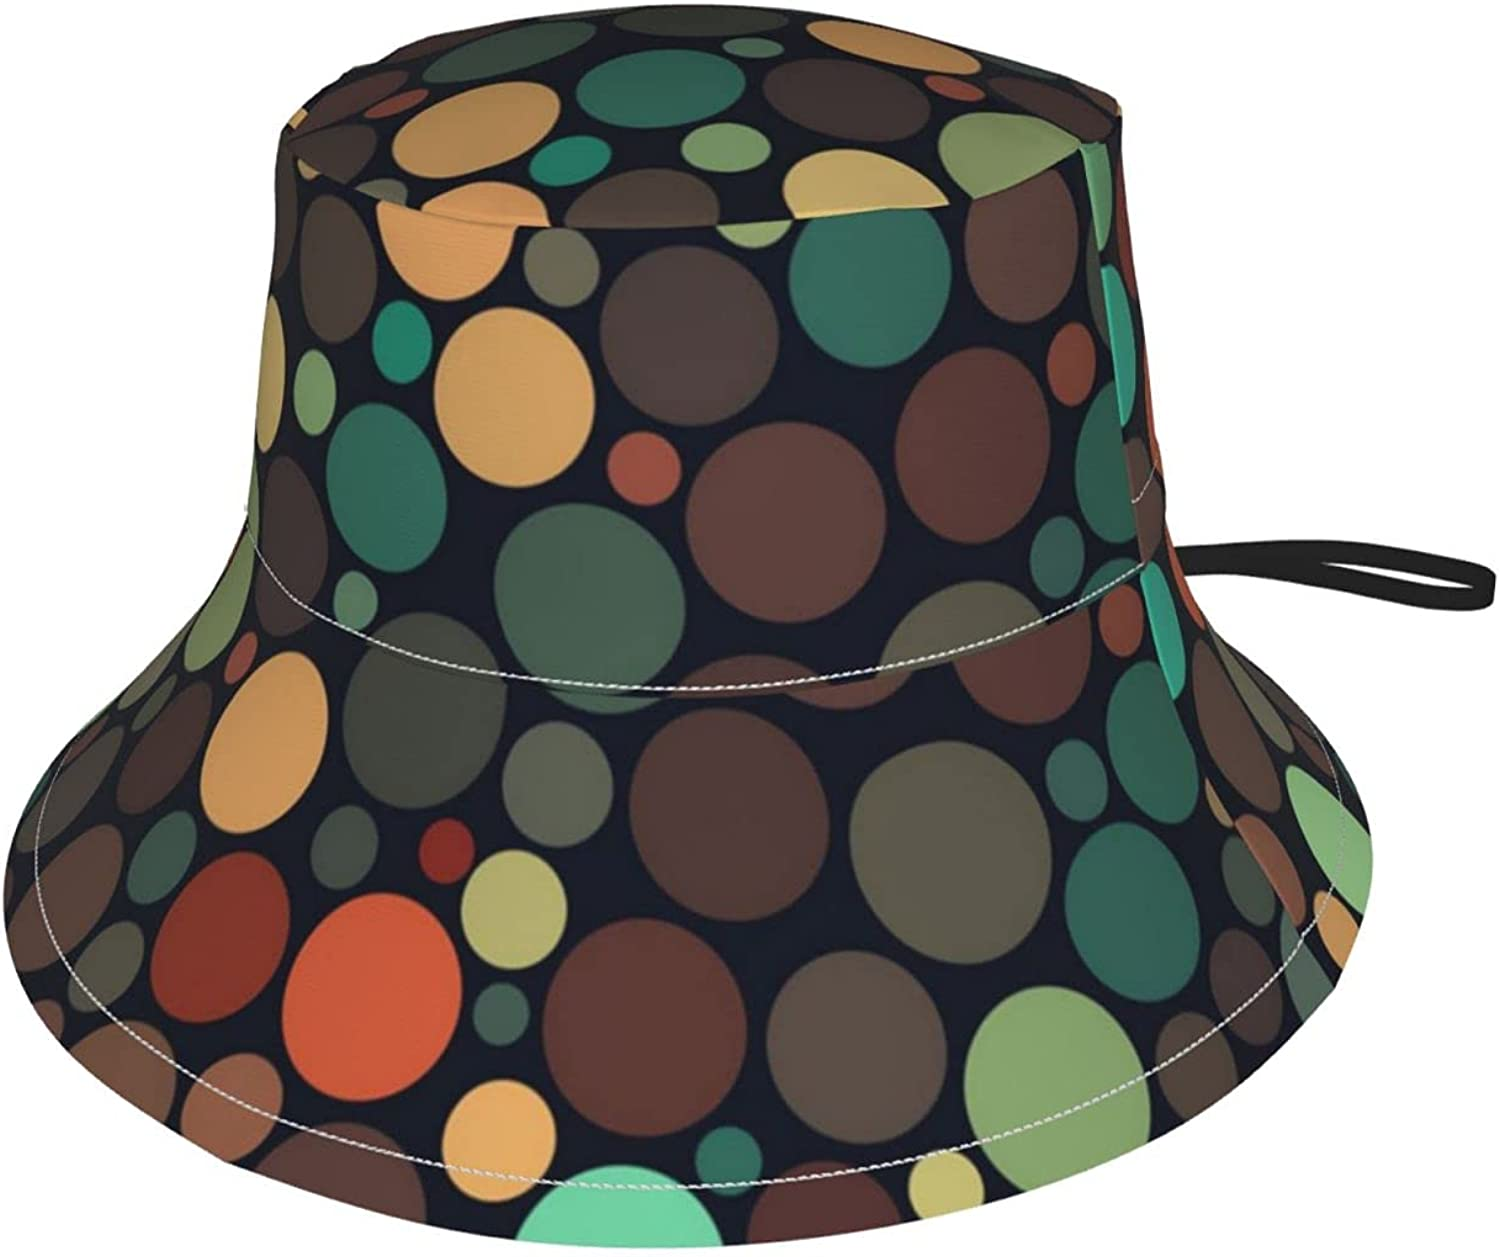 Kids Bucket Hat Jumble Multicolor Brown Teal Wide Brim Sun Protection Fishing Hat for Boys and Girls Outdoor Activities